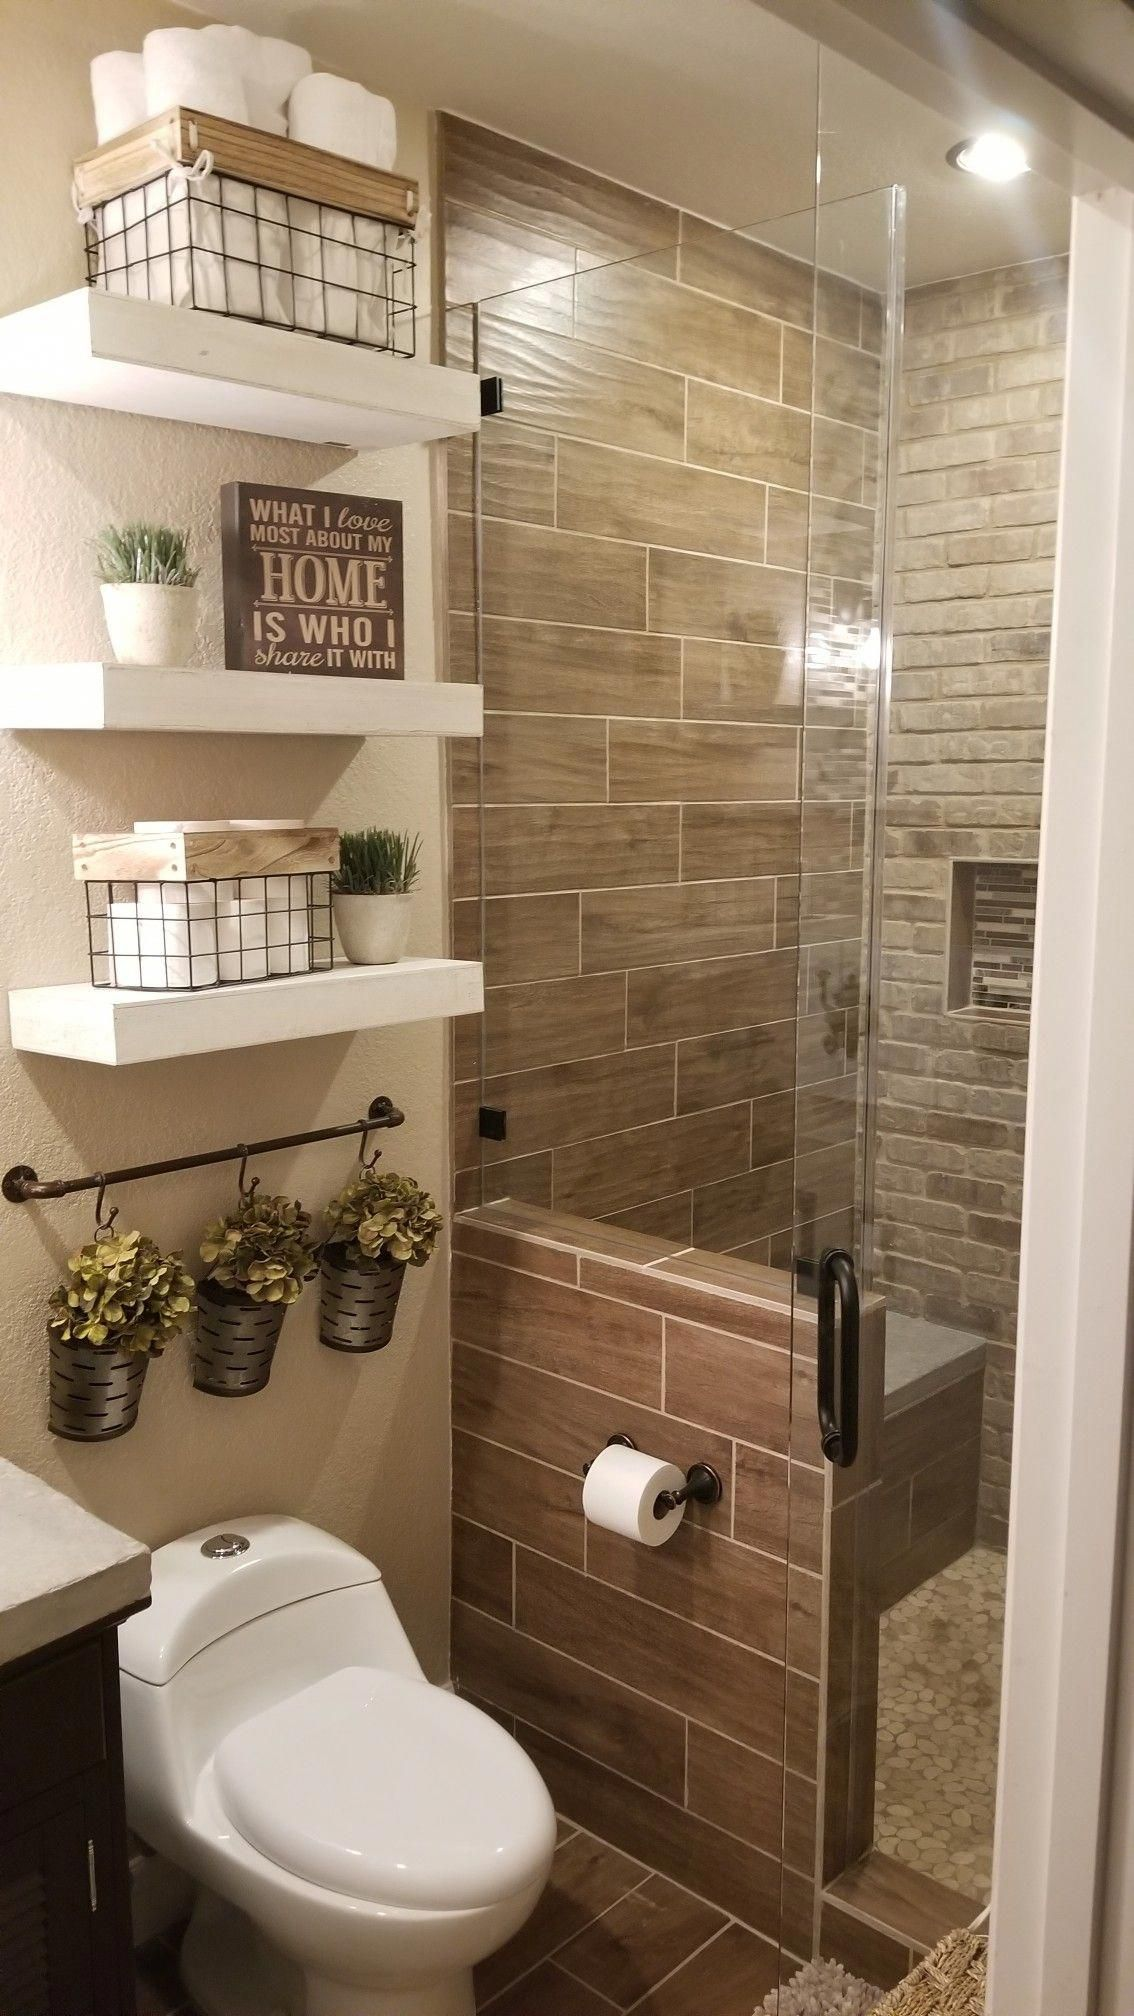 Everything About New Bathroom Remodel Do It Yourself Bathroomideasa Bathroomremodelagain Bathroomren Small Bathroom Remodel Bathrooms Remodel Small Bathroom